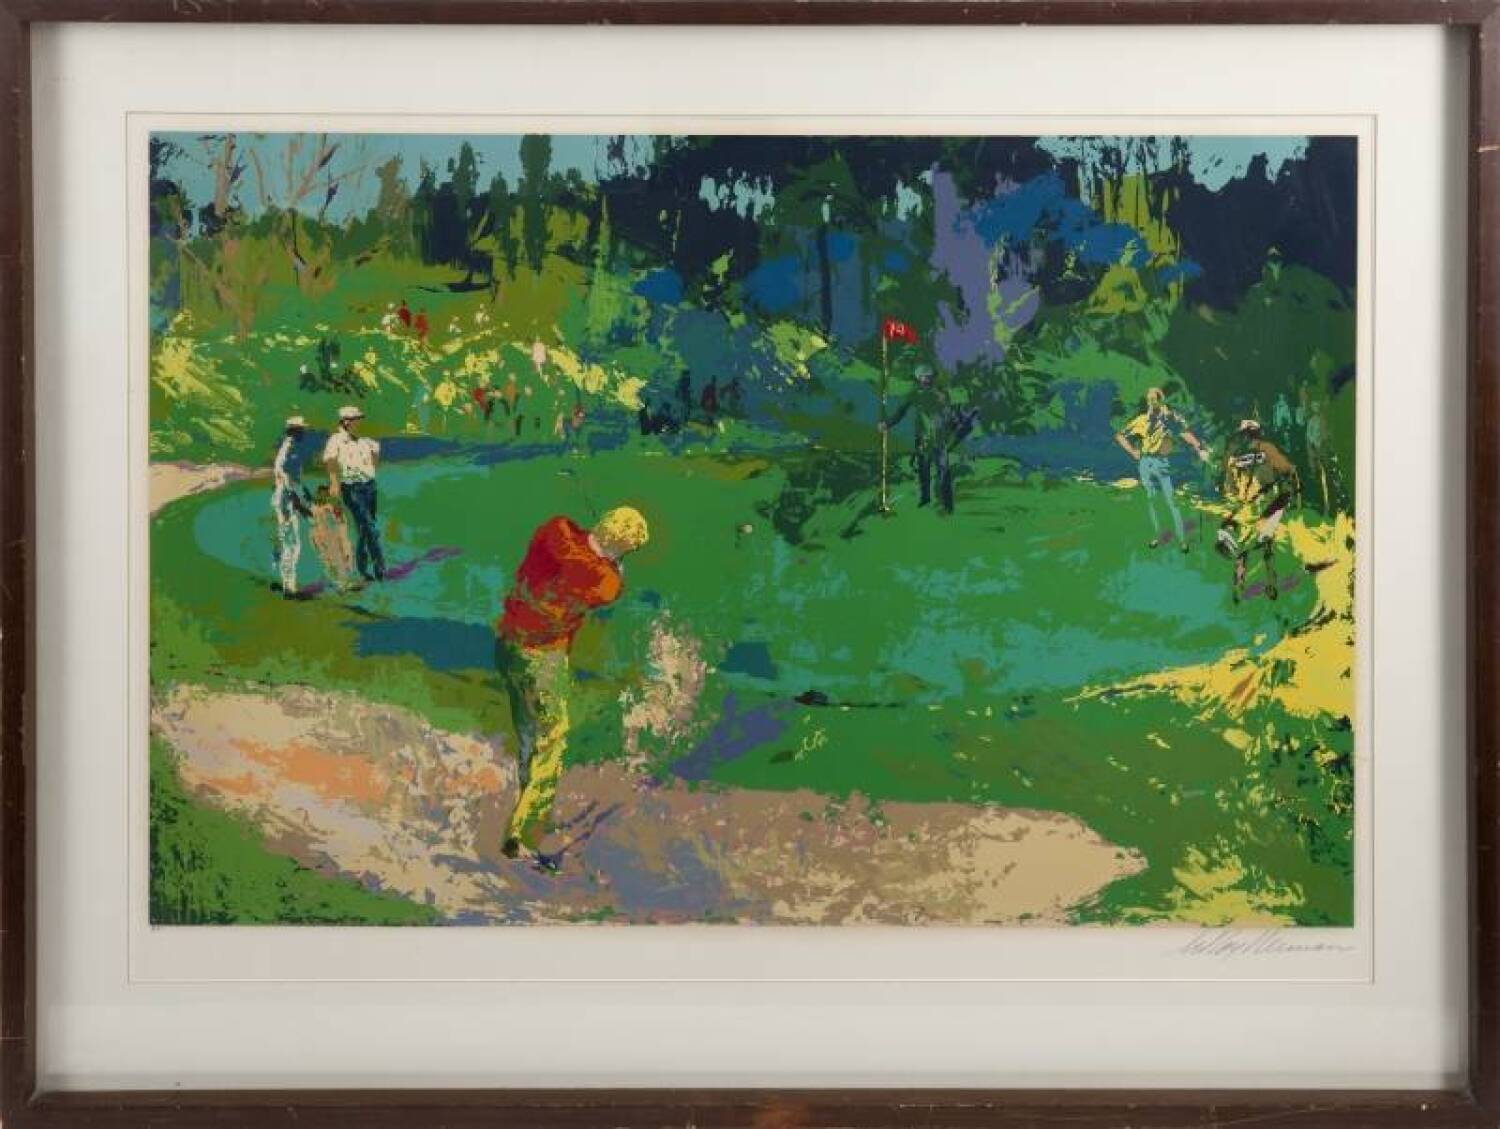 leroy neiman 1978 golf 39 s threesome serigraph current price 1000. Black Bedroom Furniture Sets. Home Design Ideas